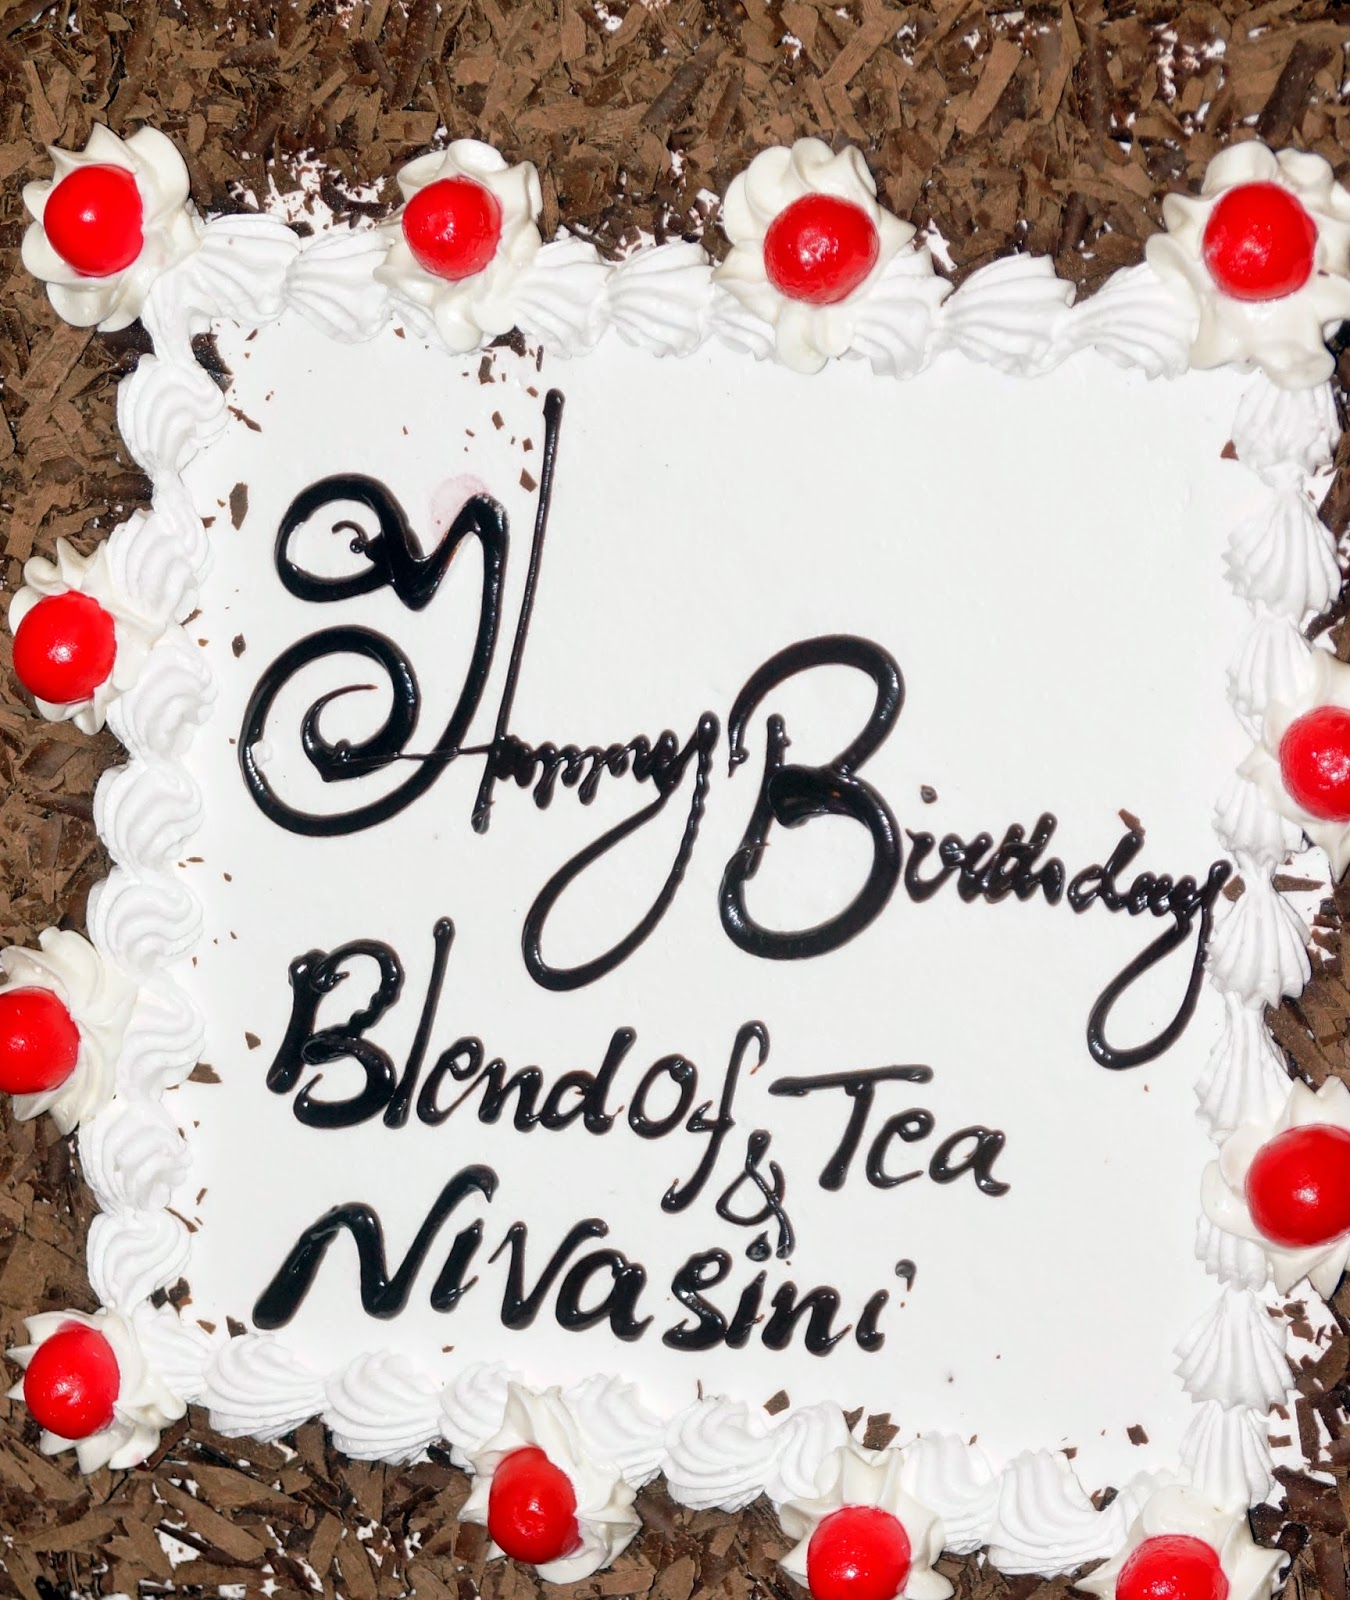 Blend Of Tea Second Anniversary Birthday Cake - Black Forest from Vacs